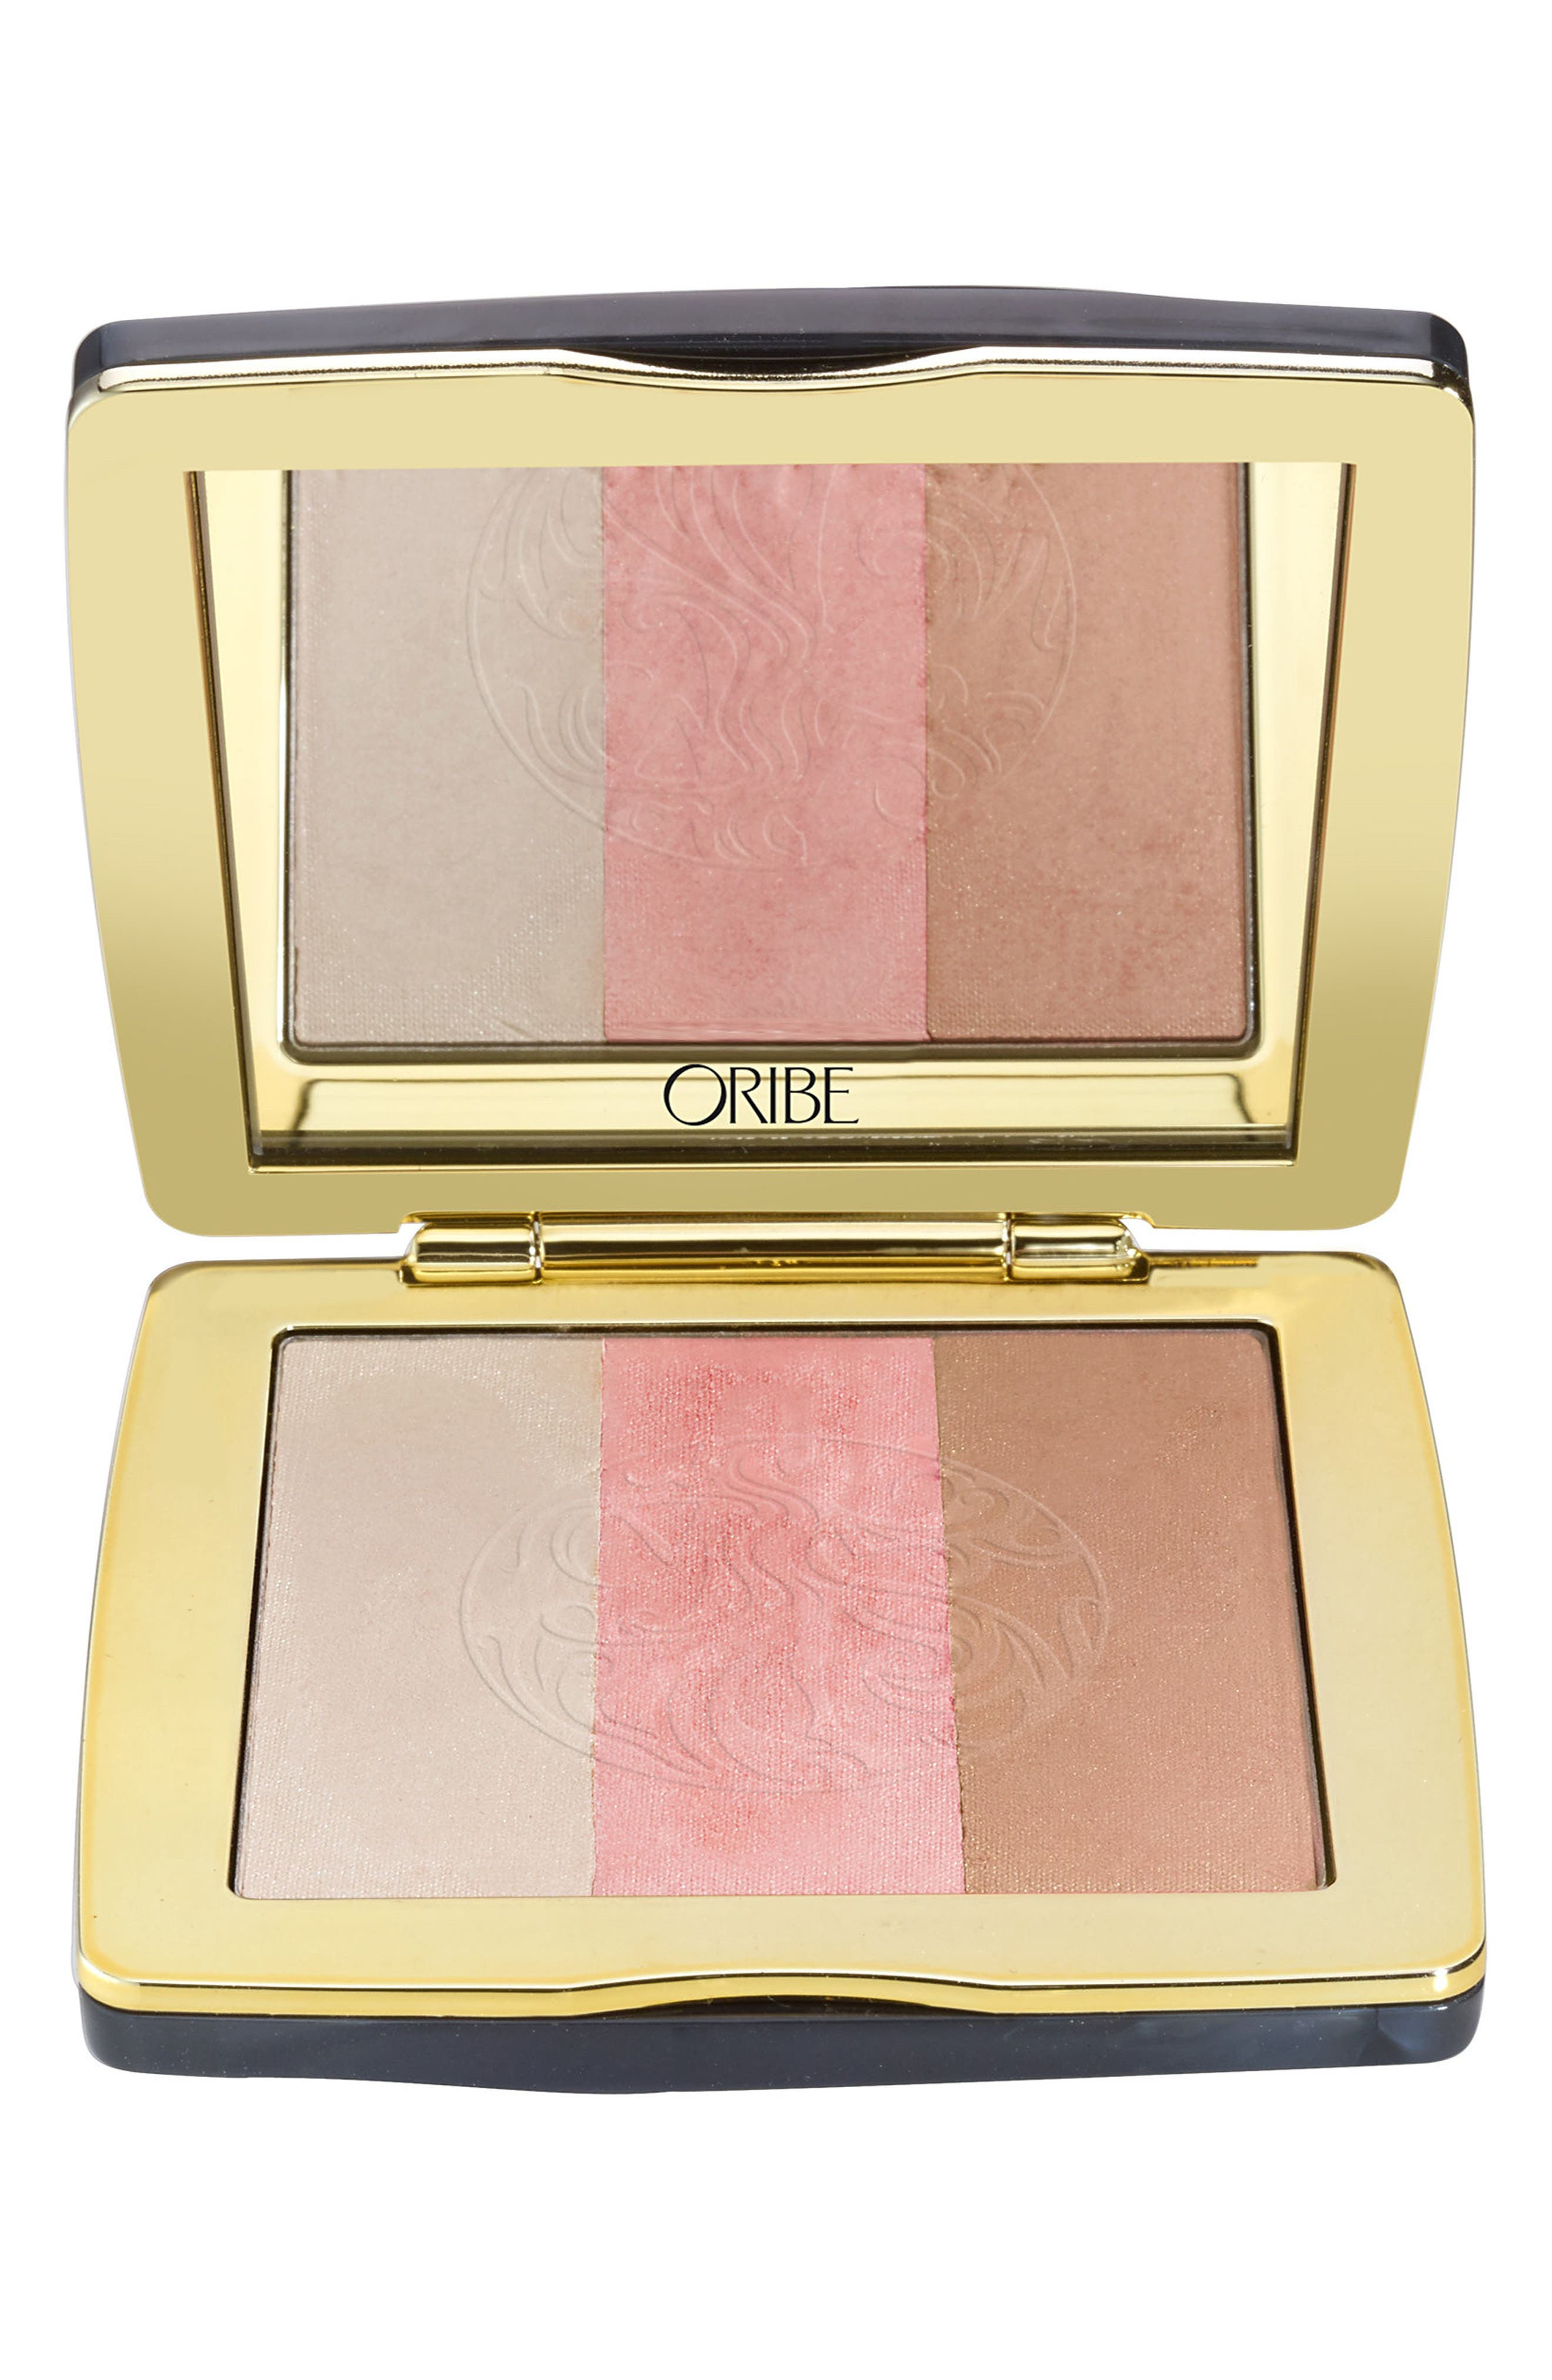 SPACE.NK.apothecary Oribe Illuminating Face Palette,                             Main thumbnail 1, color,                             SUNLIT